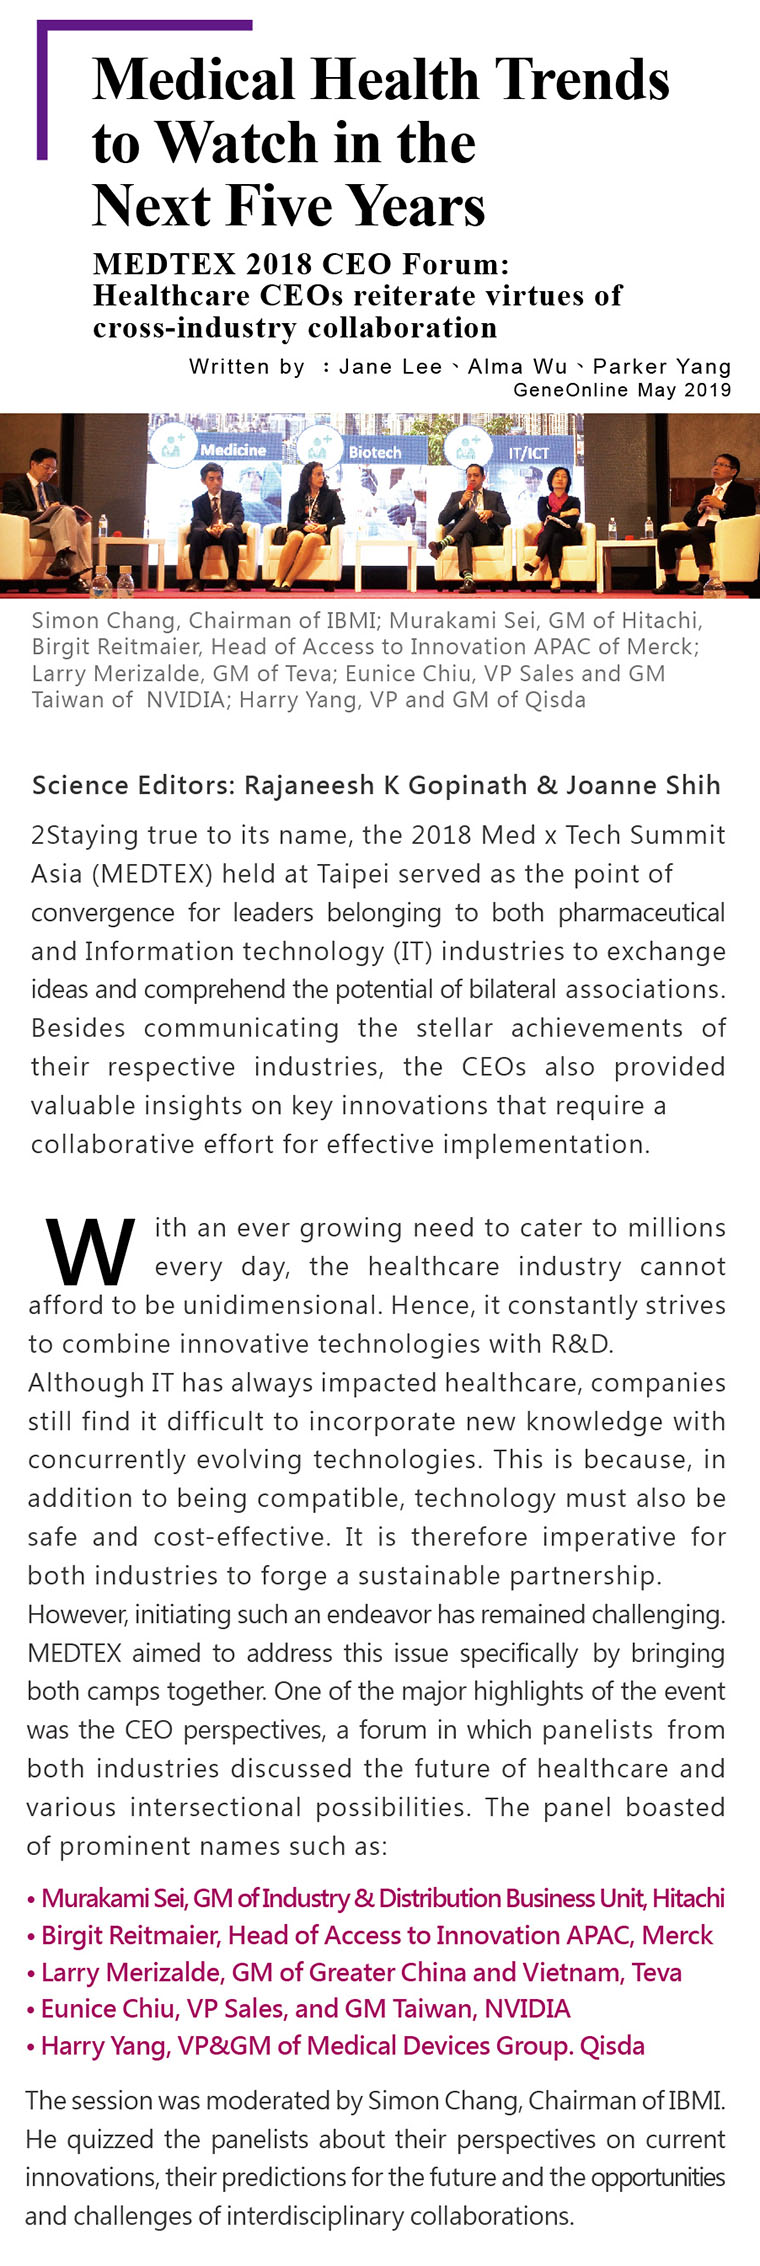 Medical Health Trends to Watch in the Next Five Years. MEDTEX 2018 CEO Forum: Healthcare CEOs reiterate virtues of cross-industry collaboration.Science Editors: Rajaneesh K Gopinath & Joanne Shih.Staying true to its name, the 2018 Med x Tech Summit Asia (MEDTEX) held at Taipei served as the point of convergence for leaders belonging to both pharmaceutical and Information technology (IT) industries to exchange ideas and comprehend the potential of bilateral associations. Besides communicating the stellar achievements of their respective industries, the CEOs also provided valuable insights on key innovations that require a collaborative effort for effective implementation. With an ever growing need to cater to millions every day, the healthcare industry cannot afford to be unidimensional. Hence, it constantly strives to combine innovative technologies with R&D. Although IT has always impacted healthcare, companies still find it difficult to incorporate new knowledge with concurrently evolving technologies. This is because, in addition to being compatible, technology must also be safe and cost-effective. It is therefore imperative for both industries to forge a sustainable partnership. However, initiating such an endeavor has remained challenging. MEDTEX aimed to address this issue specifically by bringing both camps together. One of the major highlights of the event was the CEO perspectives, a forum in which panelists from both industries discussed the future of healthcare and various intersectional possibilities. The panel boasted of prominent names such as: ●Murakami Sei, GM of Industry & Distribution Business Unit, Hitachi ●Birgit Reitmaier, Head of Access to Innovation APAC, Merck ●Larry Merizalde, GM of Greater China and Vietnam, Teva ●Eunice Chiu, VP Sales, and GM Taiwan, NVIDIA  ●Harry Yang, VP&GM of Medical Devices Group. Qisda The session was moderated by Simon Chang, Chairman of IBMI. He quizzed the panelists about their perspectives on current innovations, 